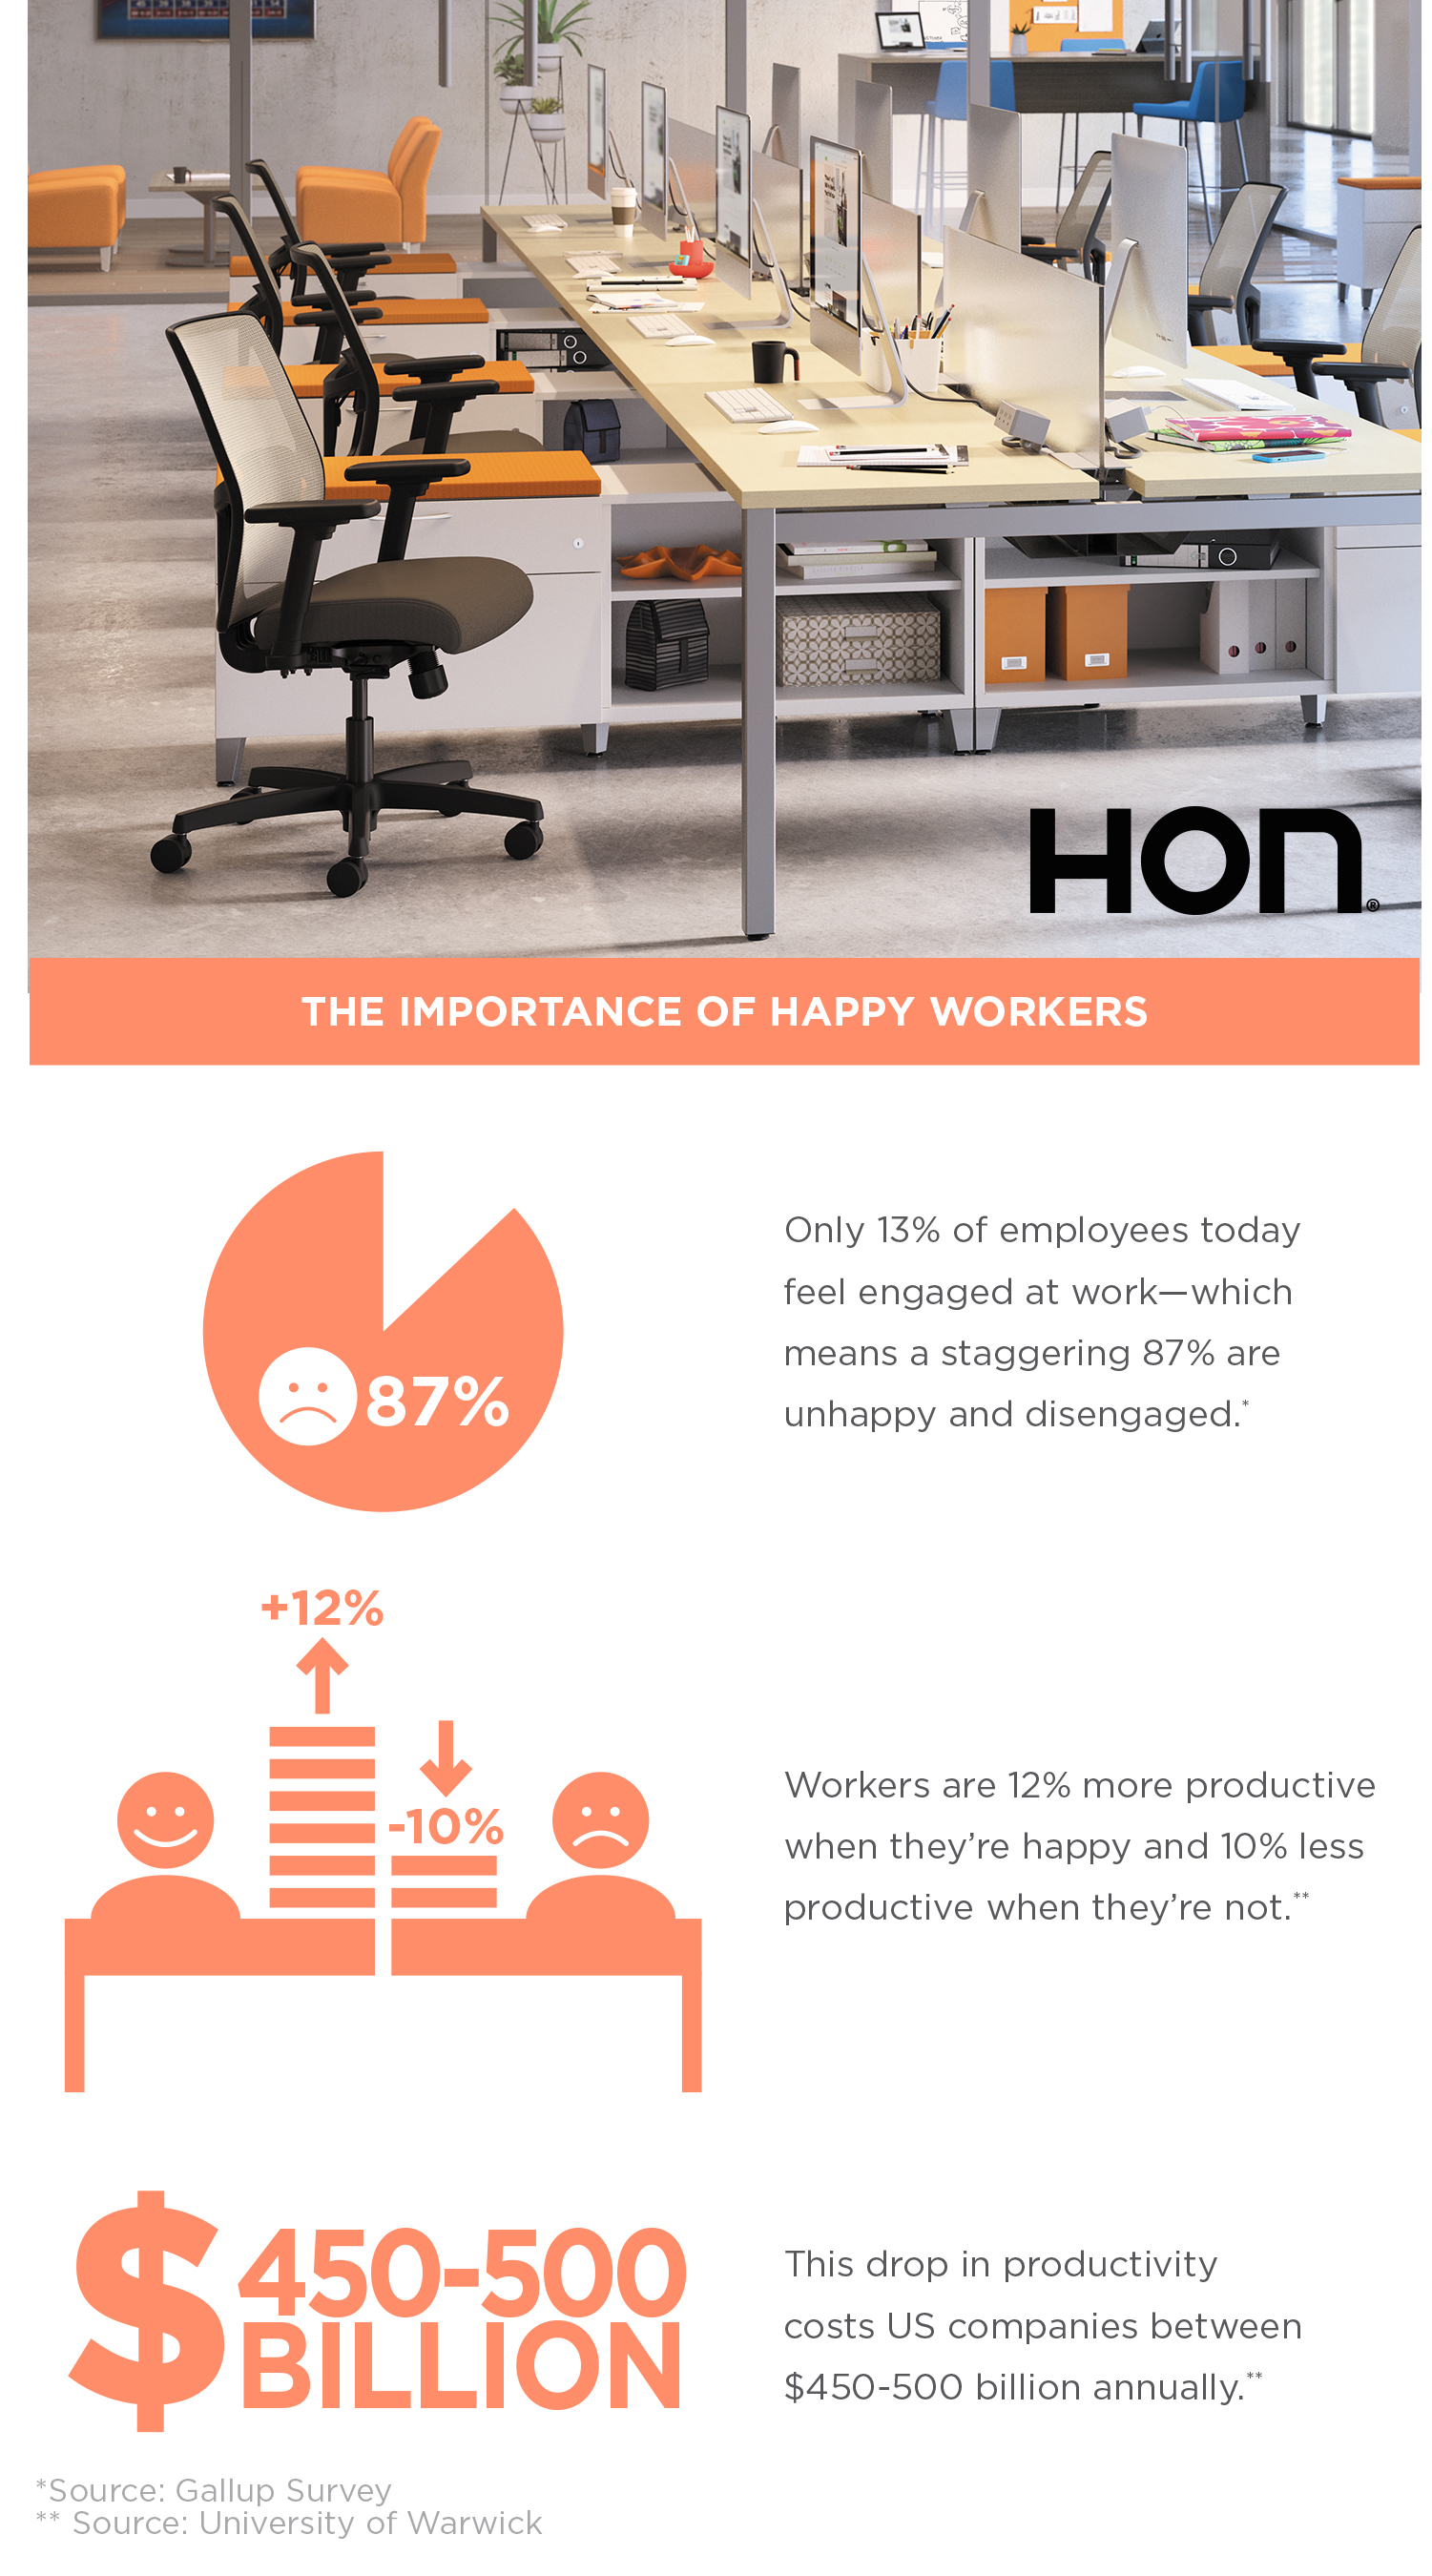 HON office furniture and infographic